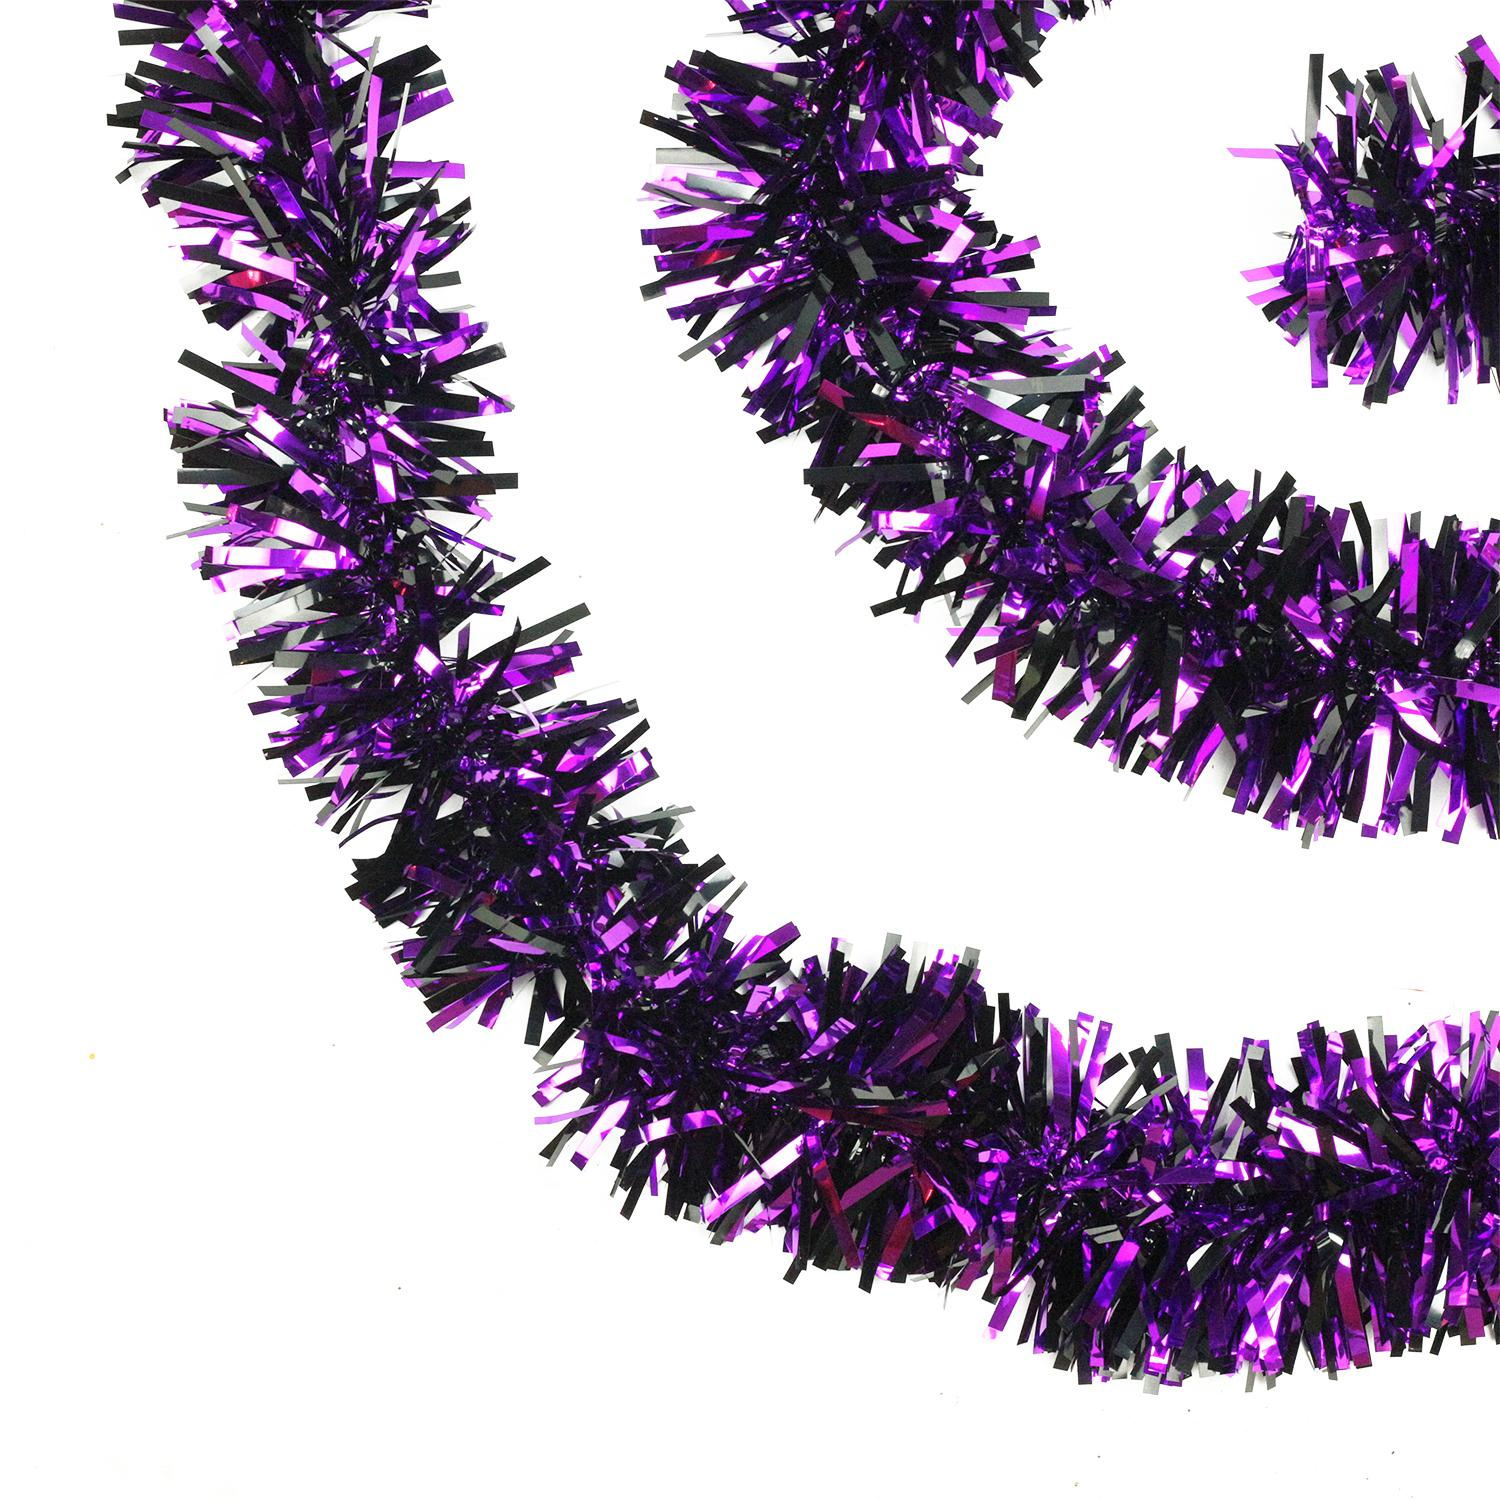 15' Black and Purple Wide Cut Tinsel Halloween Garland - Unlit